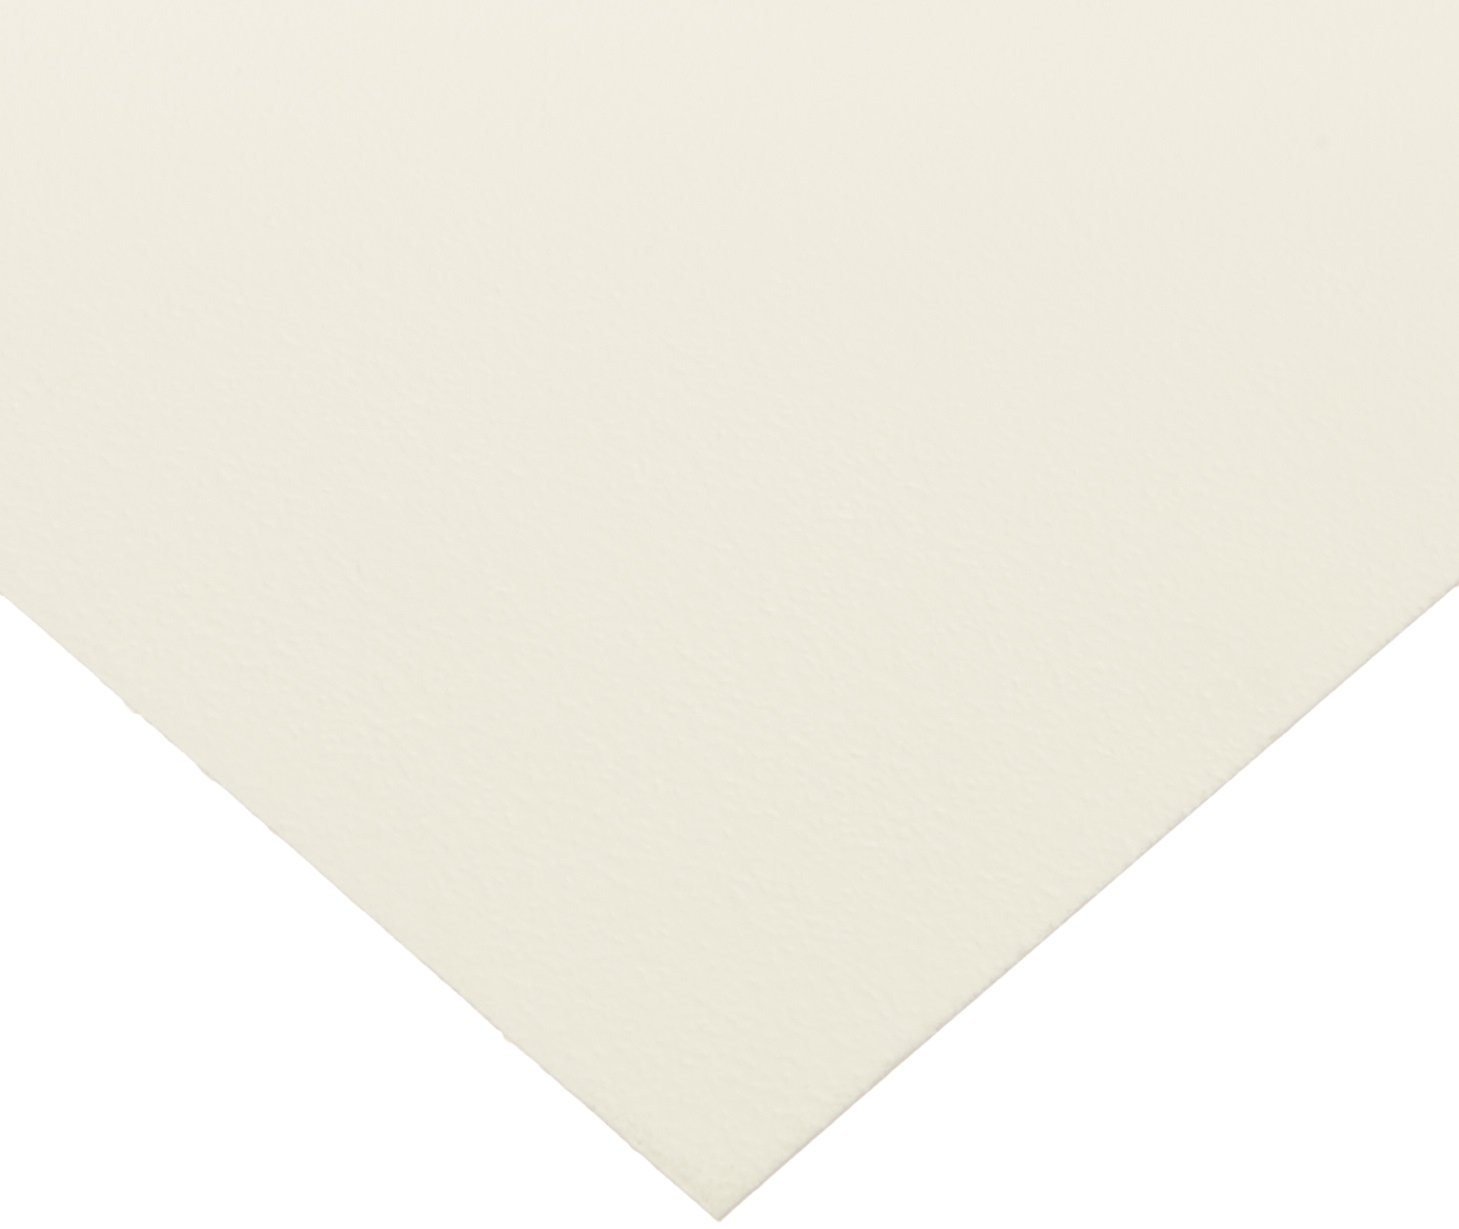 Crescent Pebbled Mat Board - 32 x 40 inches - Pack of 10 - Cream